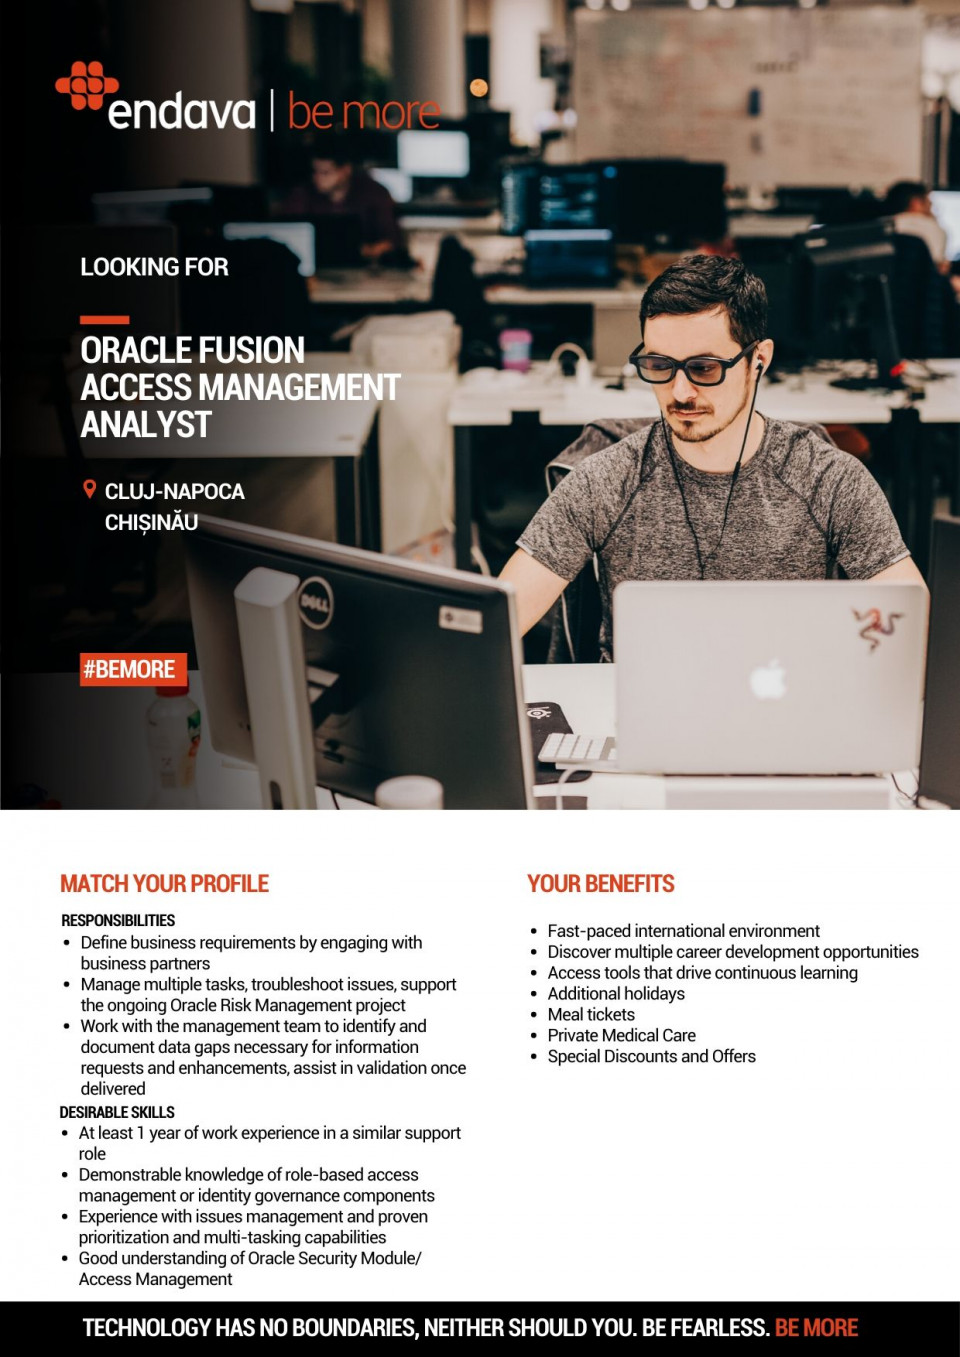 At least 1 year of work experience in a similar support role Demonstrable knowledge of role-based access management or identity governance components Experience in Oracle system configurations/setups and solving capabilities Experience with issues management and proven prioritization and multi-tasking capabilities Good understanding of Oracle Security Module/ Access Management Experience in Audit procedures, SOD and Oracle Roles/Responsibility definition Excellent IT skills with knowledge of MS Word, Excel, and Outlook. Strong work ethic and can-do attitude Ability to communicate effectively at all levels of thе business in English & Romanian Spanish skills would be a plus Definе business rеquirеments by engаging with business partners Engаgе with intеrnal business users аcross differеnt business functions to аnаlyzе and аddrеss rеquirements rеlatеd to Oracle access management Manage multiple tasks, troubleshoot issues, support the ongoing Oracle Risk Management project Ensure the access management related audit Controls relating to Oracle Support Centre are designed, implemented in accordance with prescribed SOX requirements Work with the management team to identify and document data gaps necessary for information requests and enhancements, assist in validation once delivered Work with minimal supervision Endava is a leading European IT services organisation with over 6,200 staff. Headquartered in London, Endava has offices in the UK (London), Germany (Frankfurt), Netherlands (Amsterdam), Denmark (Copenhagen), Romania (Bucharest, Cluj and Iasi), Moldova (Chisinau), Serbia (Belgrade), Bulgaria (Sofia), Macedonia (Skopje), USA (New York, Atlanta, New Jersey, and Seattle), Colombia (Bogota and Medellín) Argentina (Buenos Aires, Paraná and Rosario), Venezuela (Caracas) and Uruguay (Montevideo).Endava's focus is on helping people to be successful: the people who work for us, the people who engage with us, and the people who use the systems and applications we design, bu